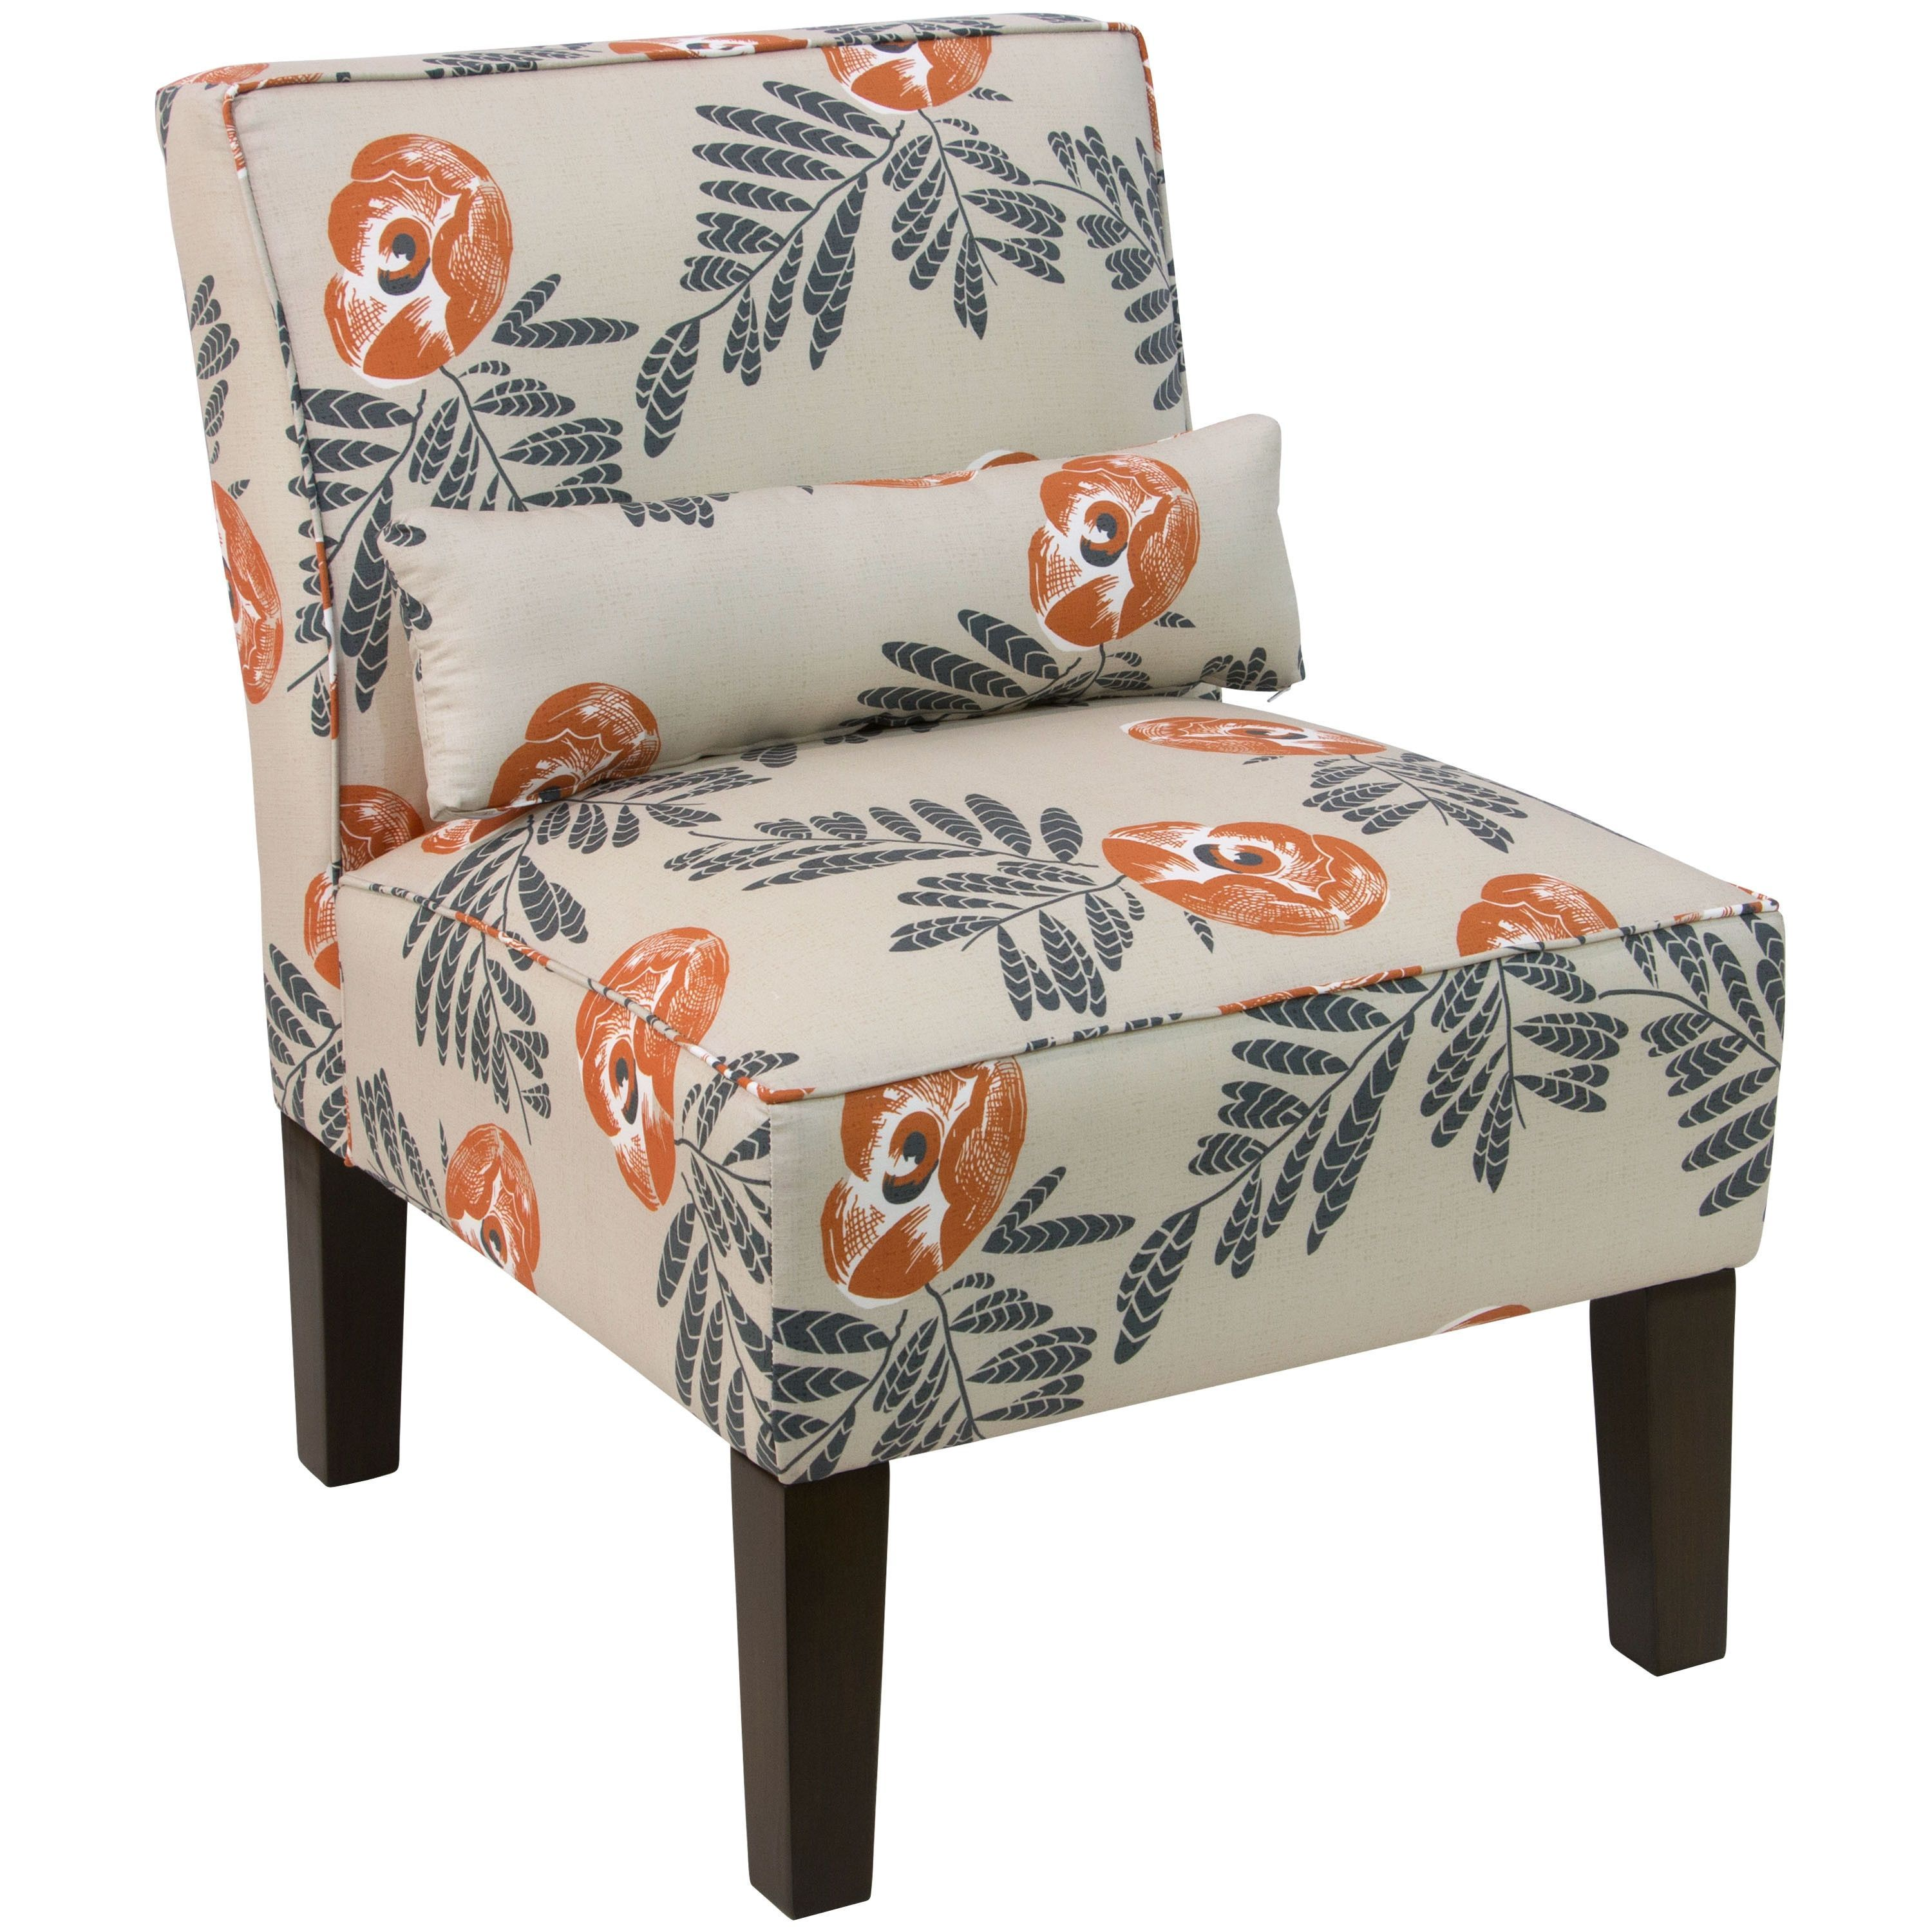 blue pattern accent chair safety first wooden high skyline cream fabric with orange grey floral mod